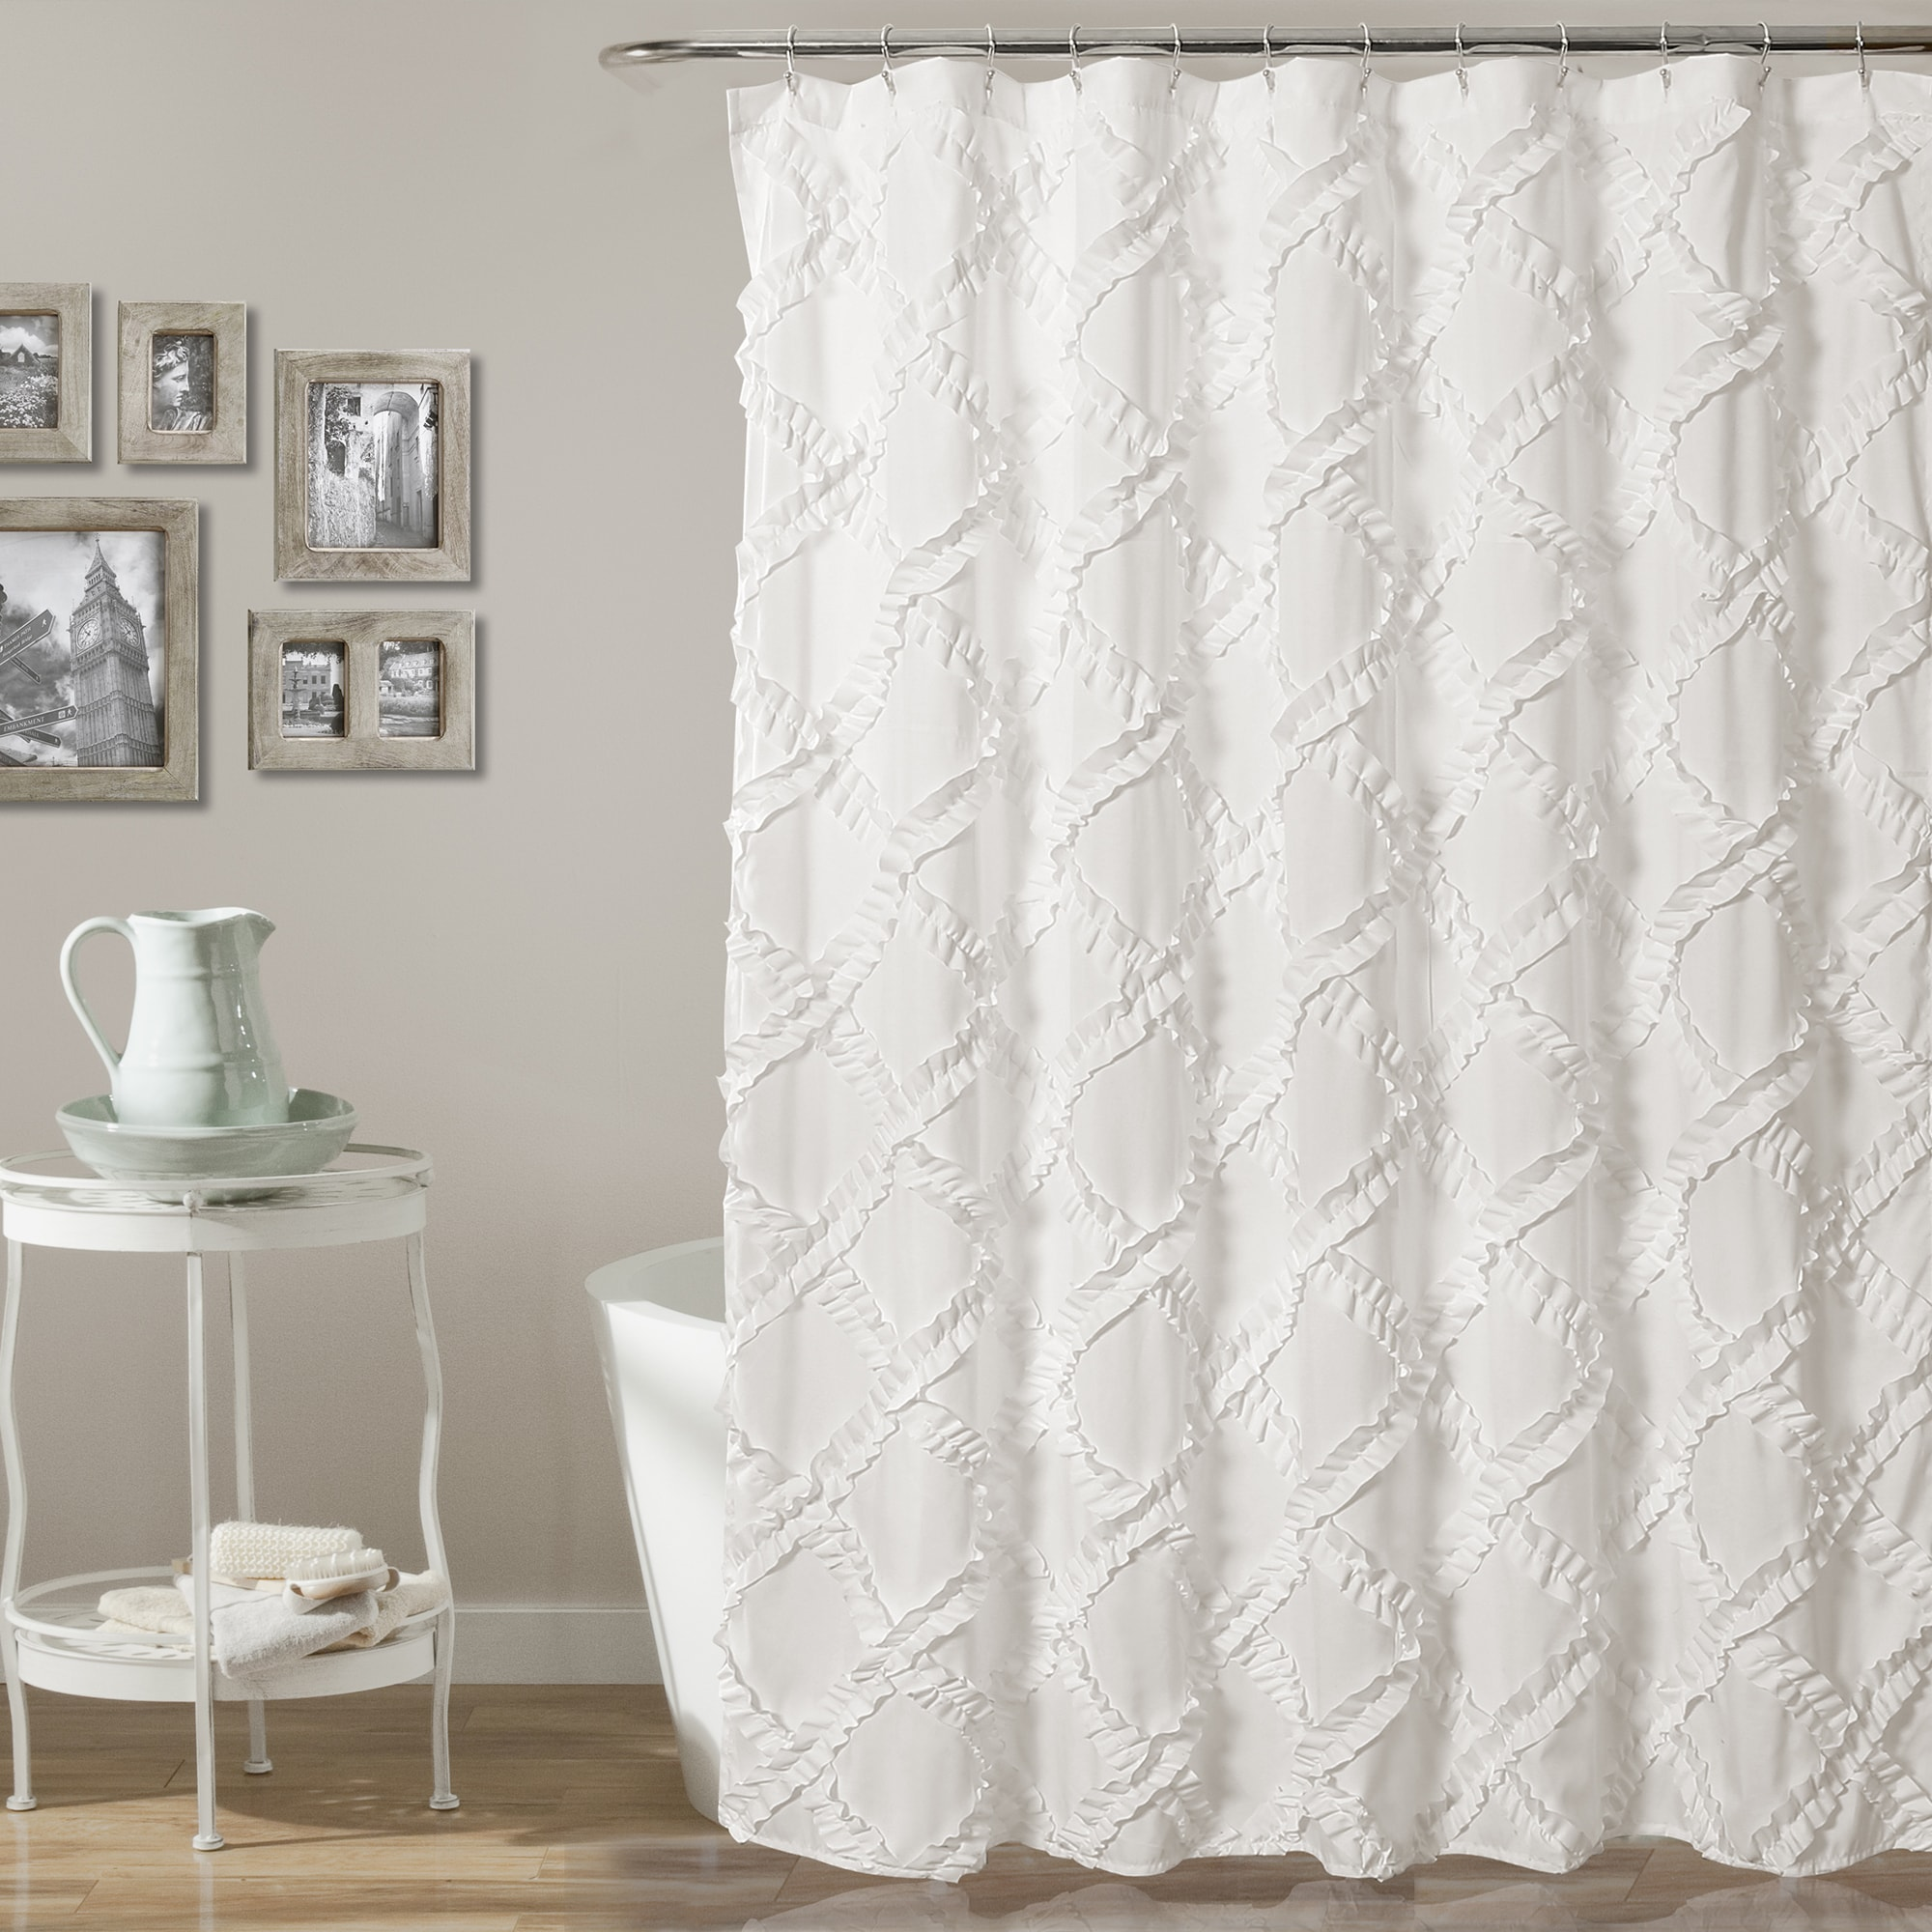 stripe inspirational teen table turquoise mint curtains dazzling curtain morracan and tangerine boho orange trendy burnt of kitchen walmart shower